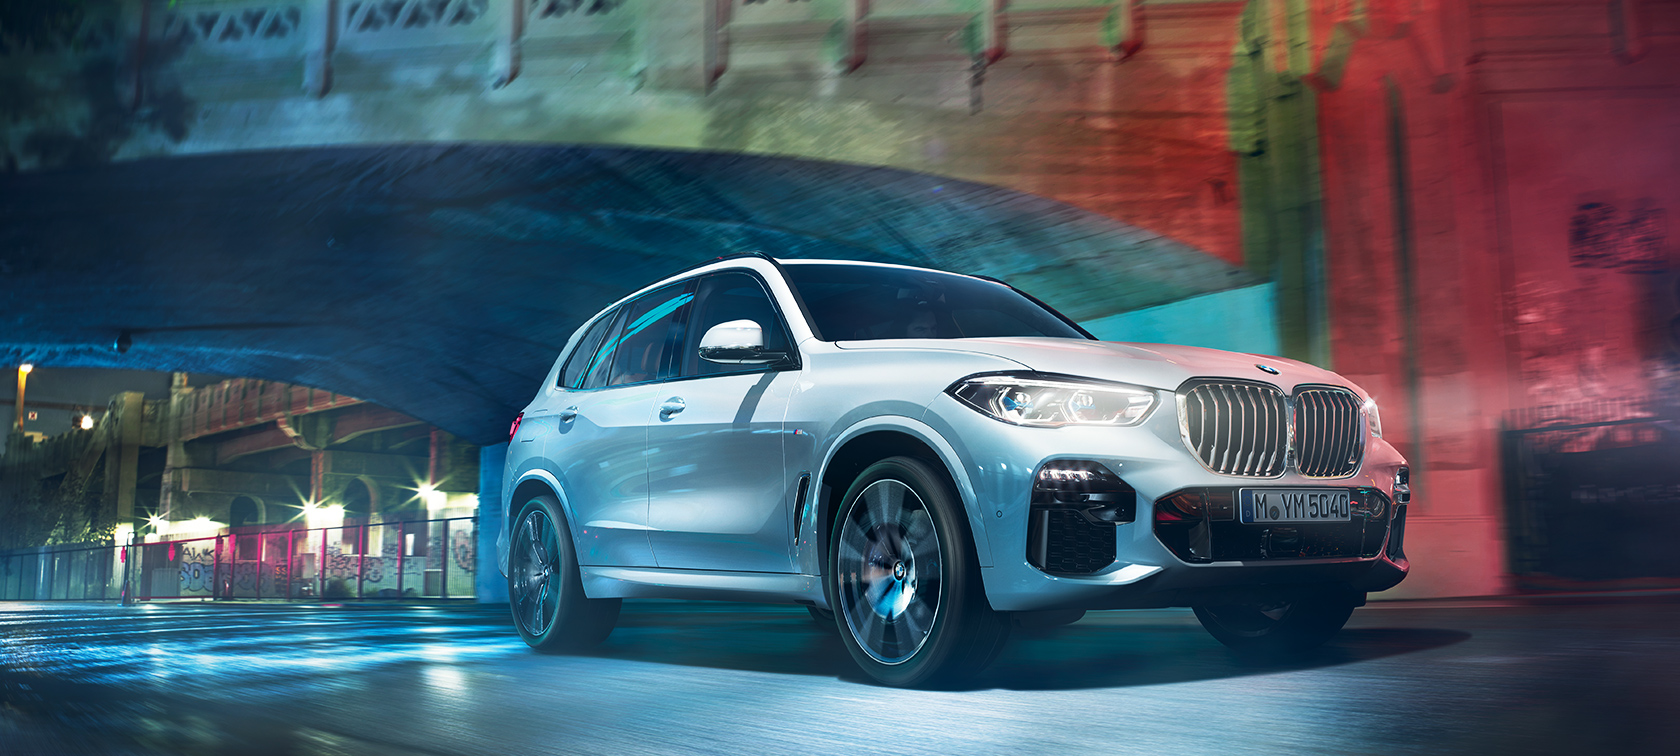 The Bmw X5 Travelling Through City At Night